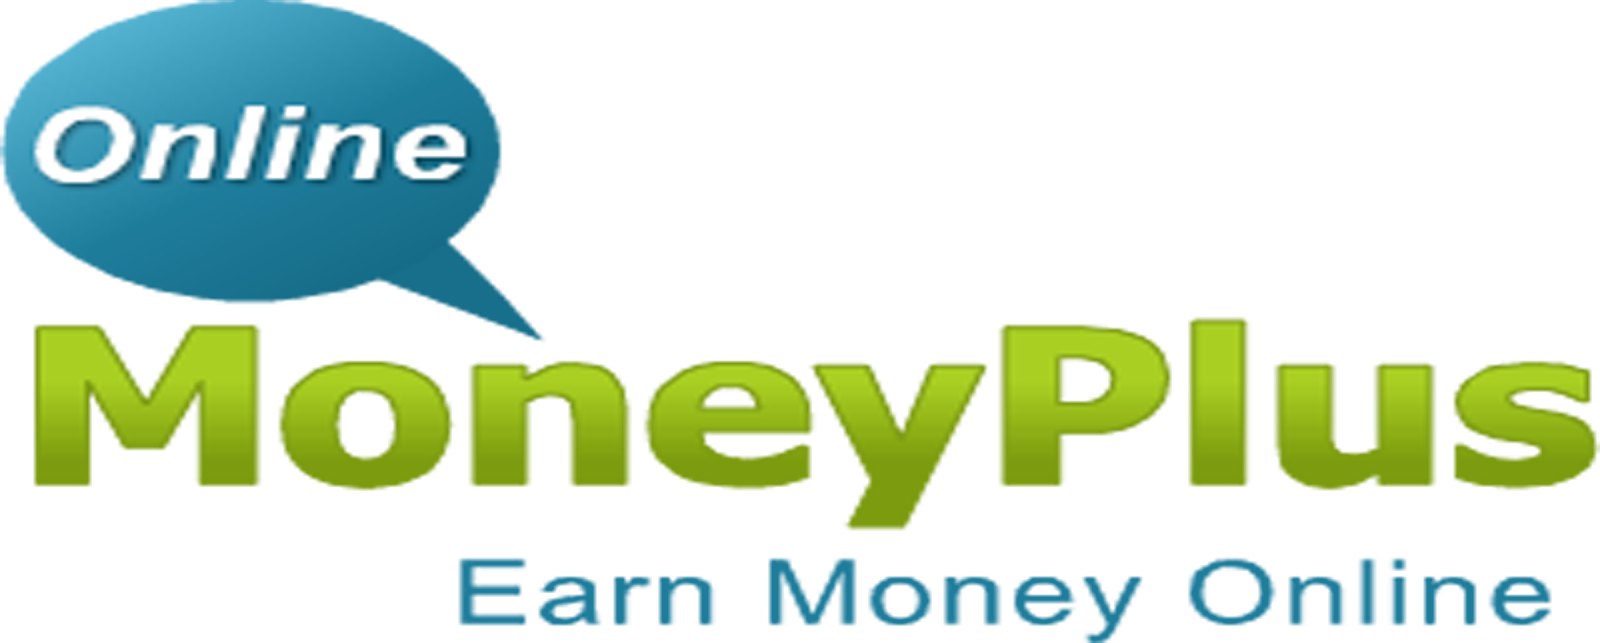 Make Money Online work from home earn money online business ideas-MoneyPlus